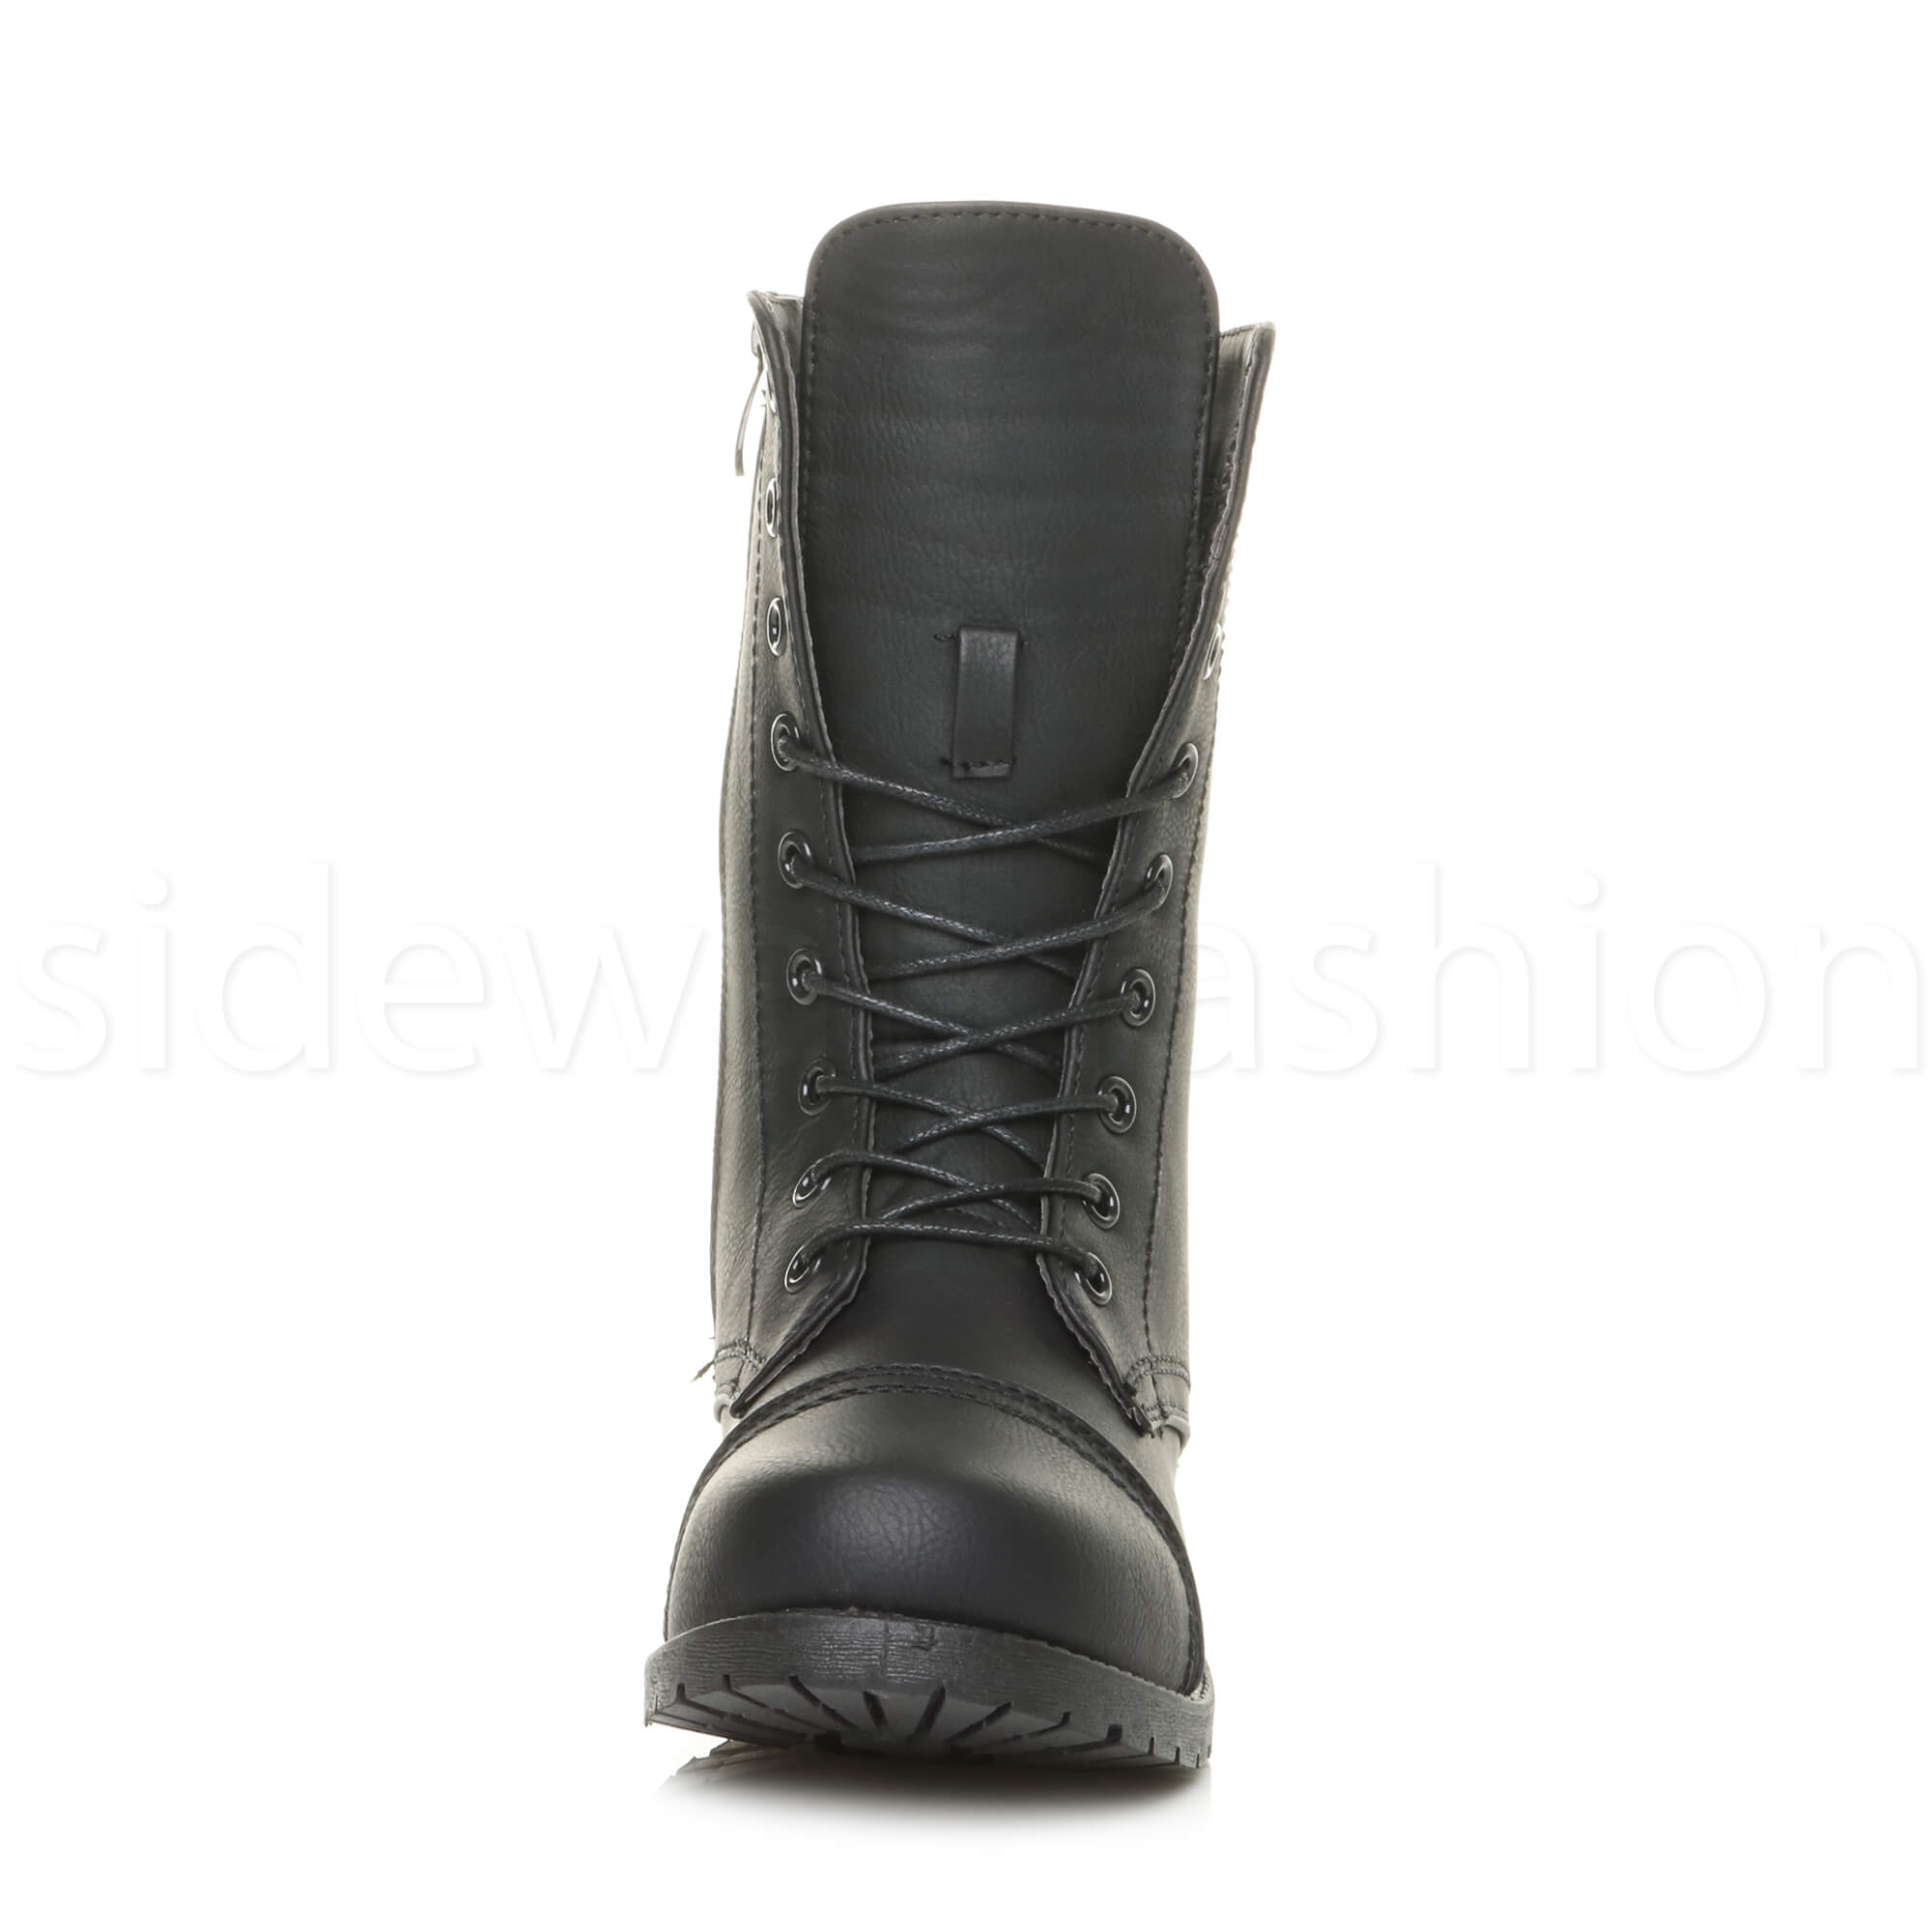 Womens-ladies-low-heel-flat-lace-up-zip-combat-biker-military-ankle-boots-size thumbnail 63